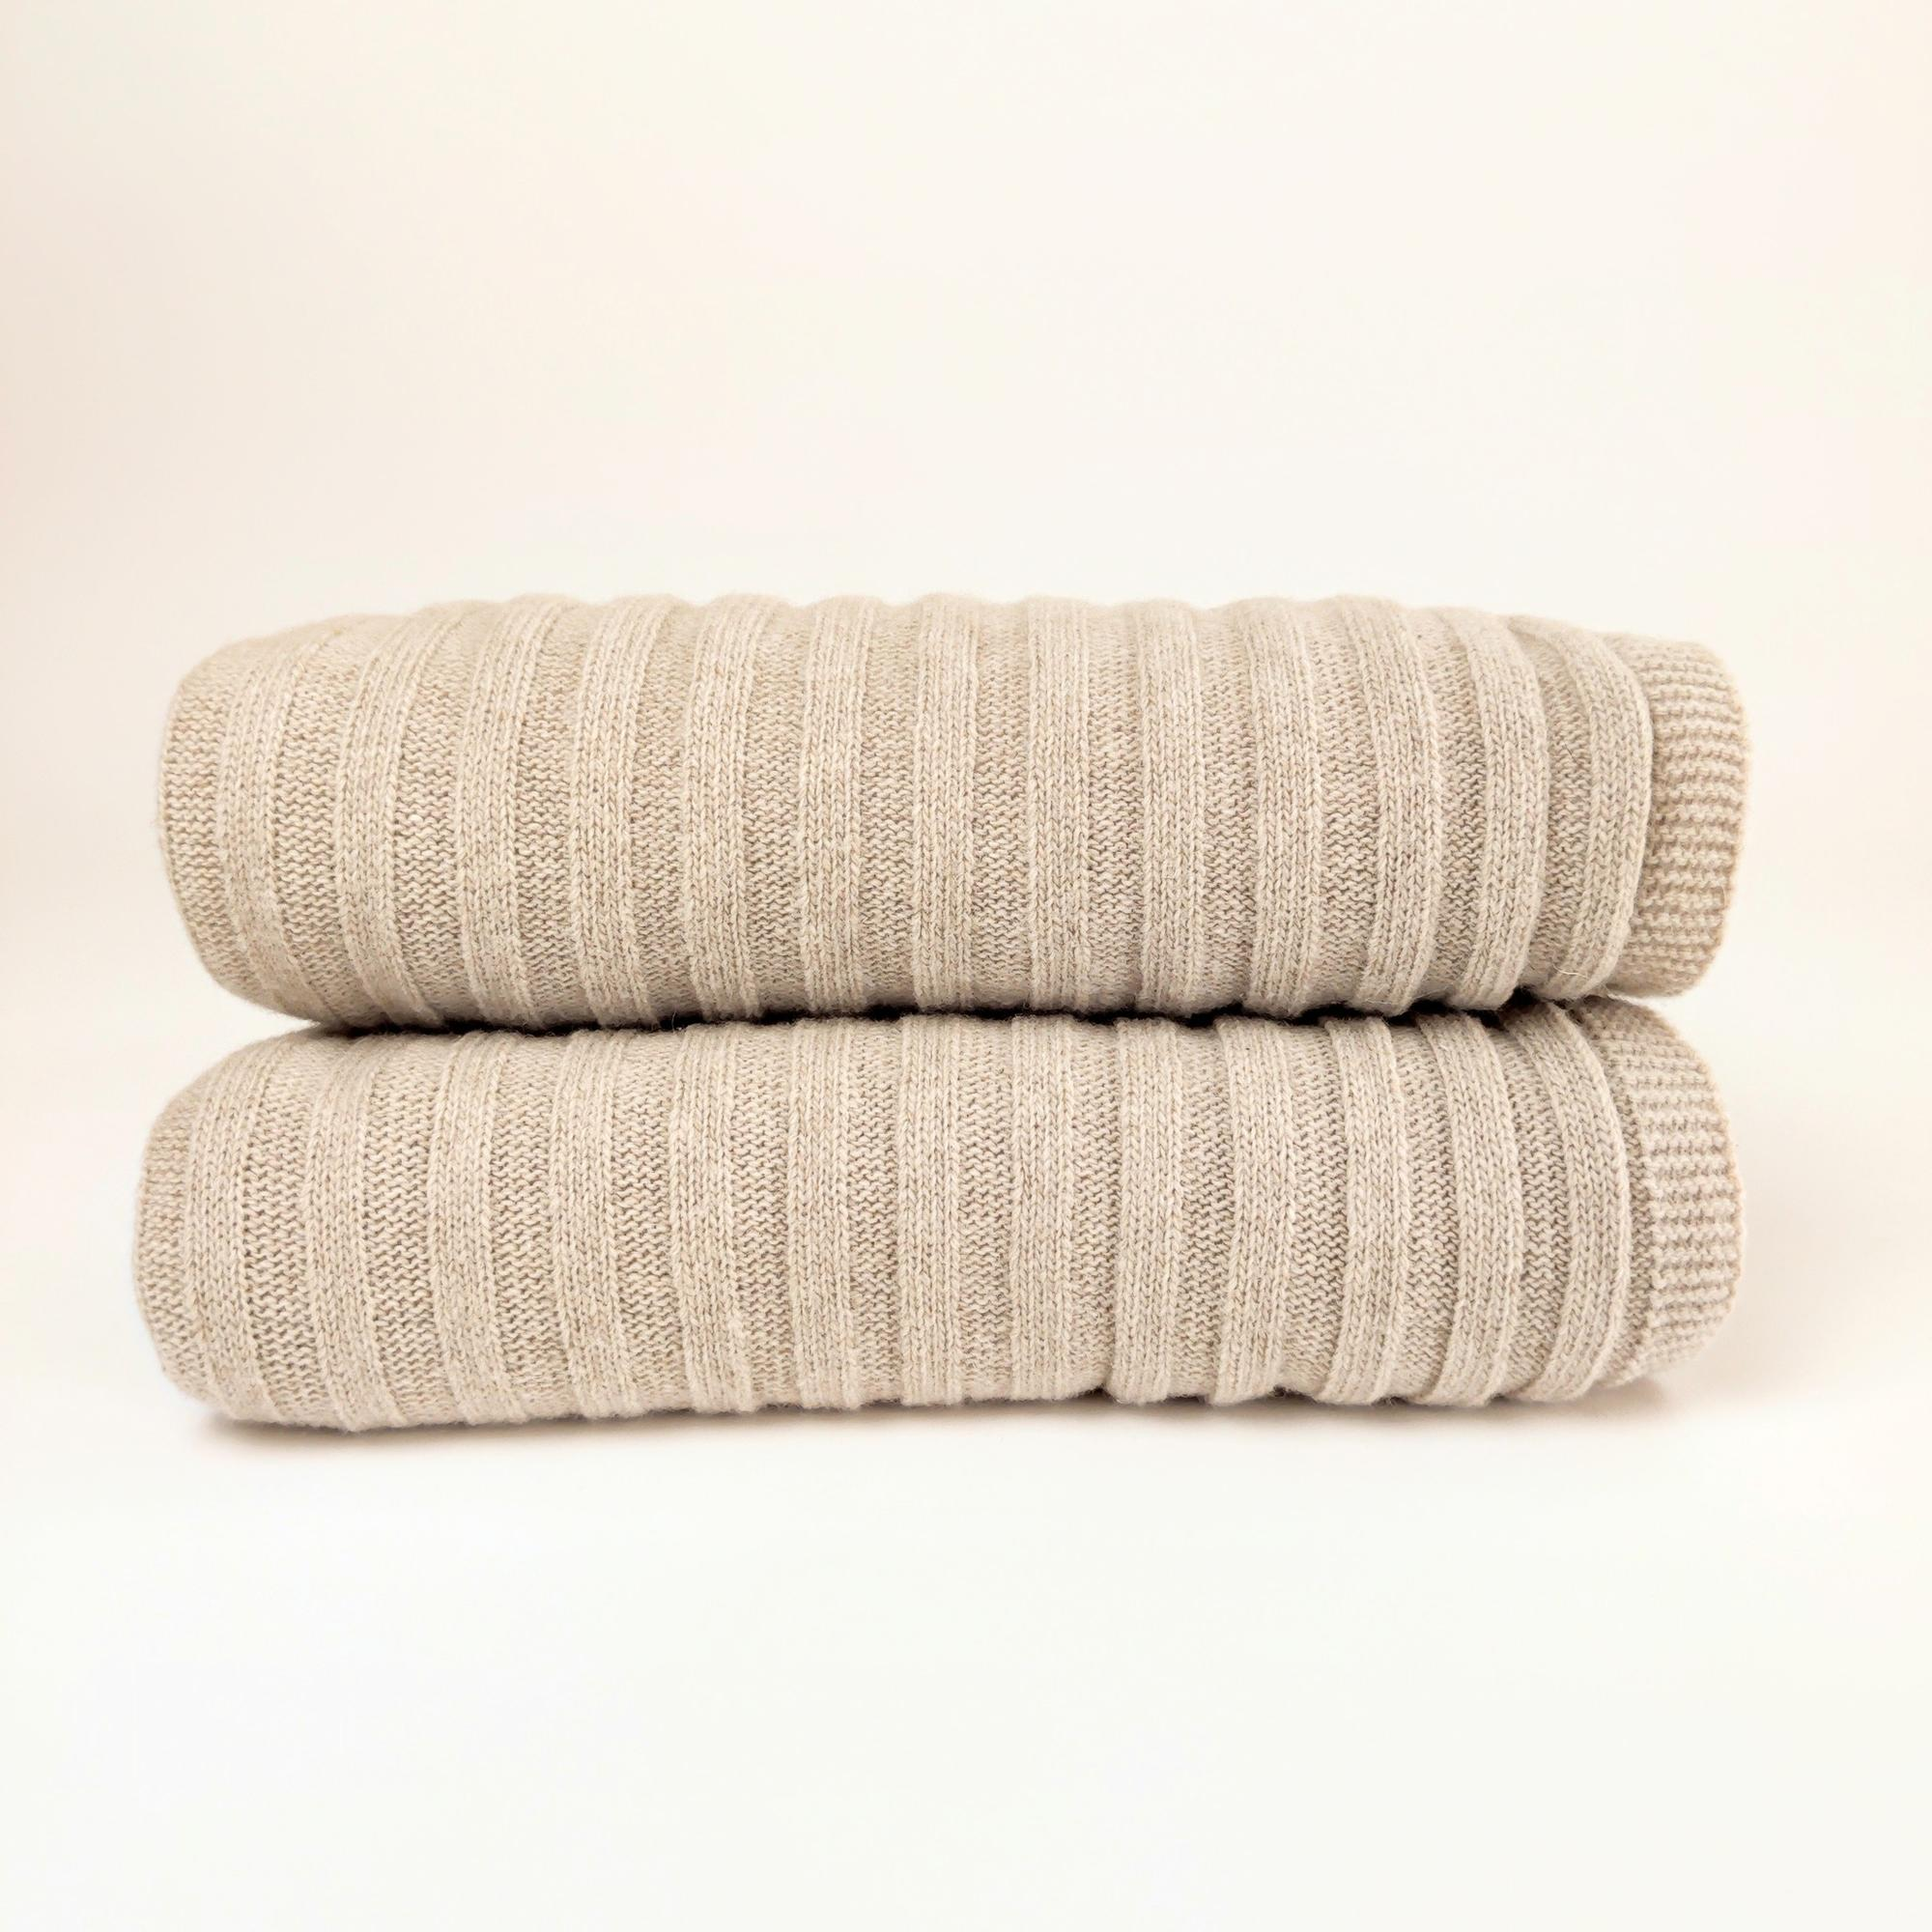 KOC MERINO GEELONG TAUPE - Resort Living